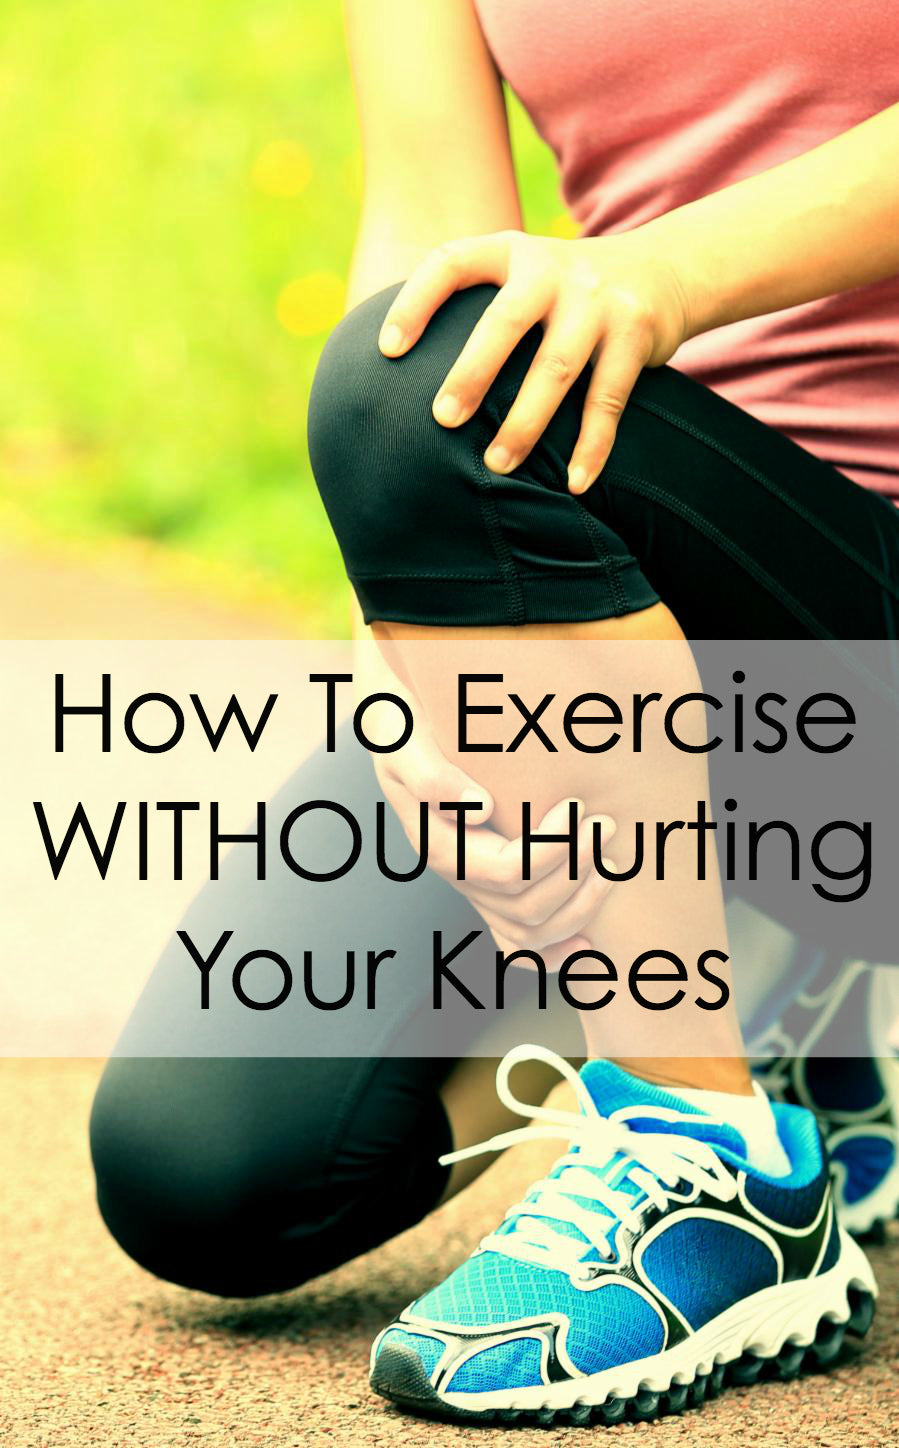 Exercises that are good for knees